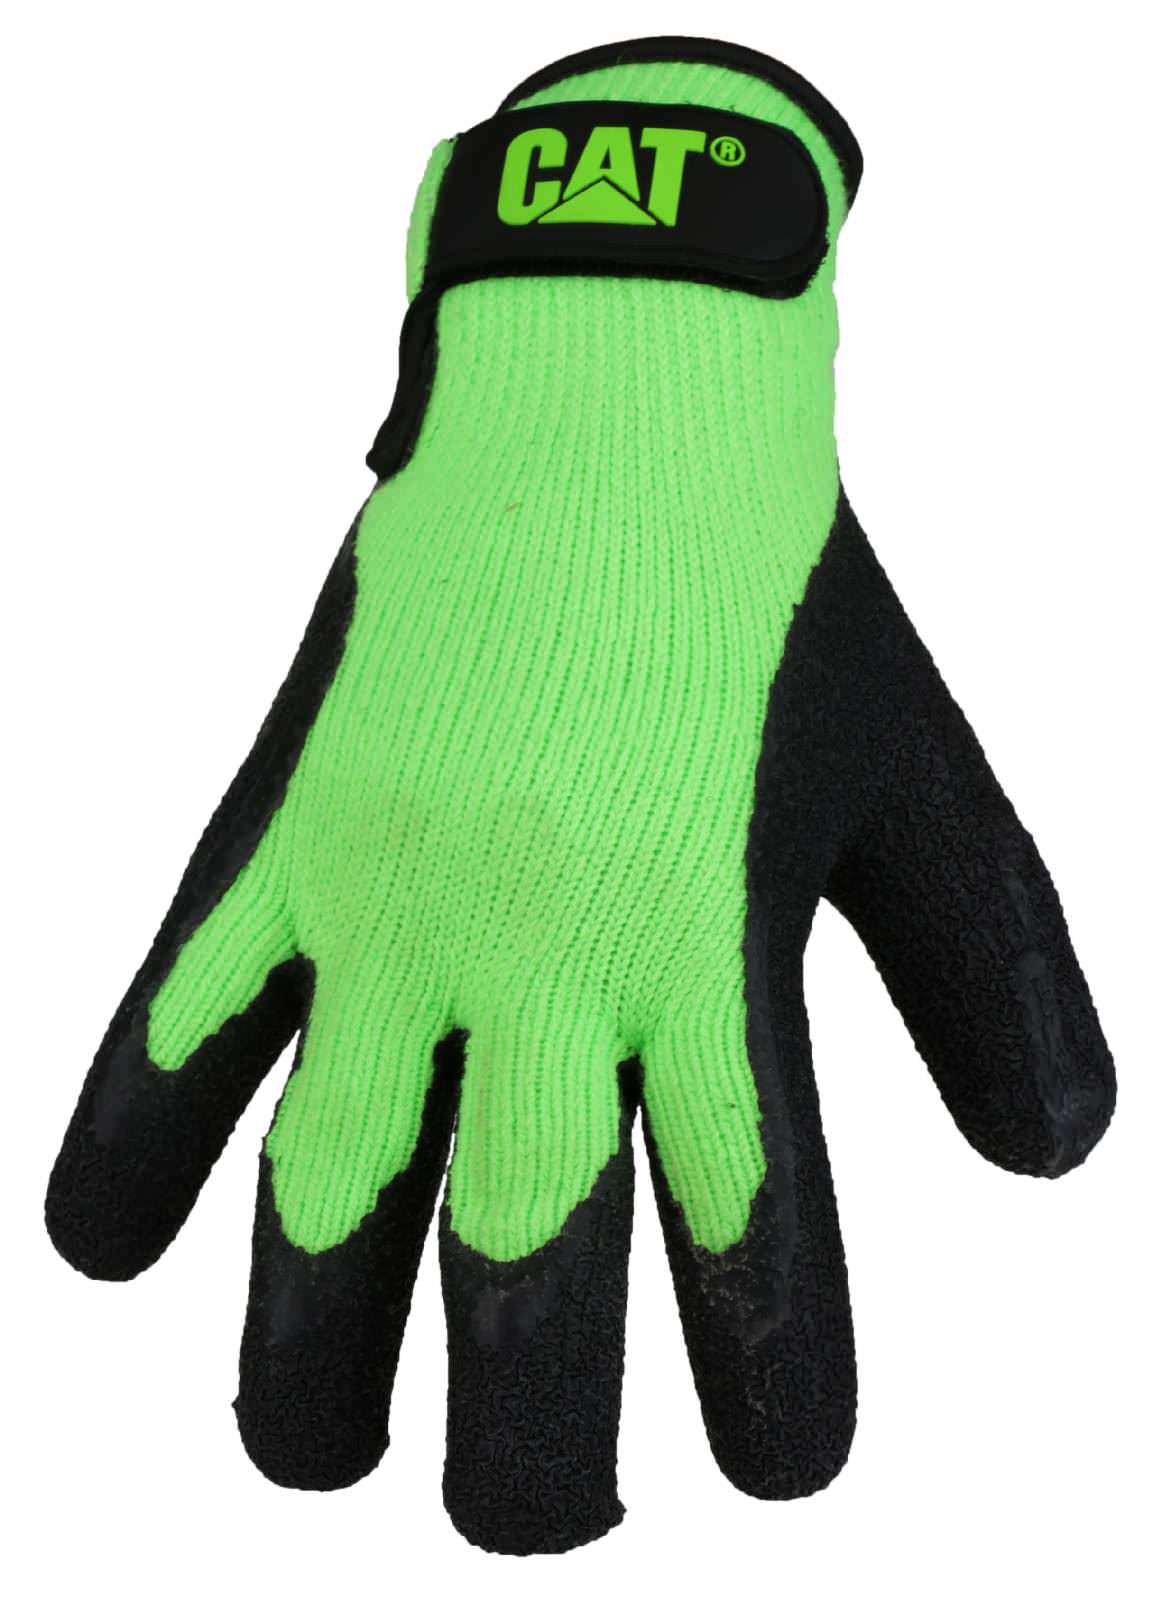 CAT 17417 Latex Palm Glove